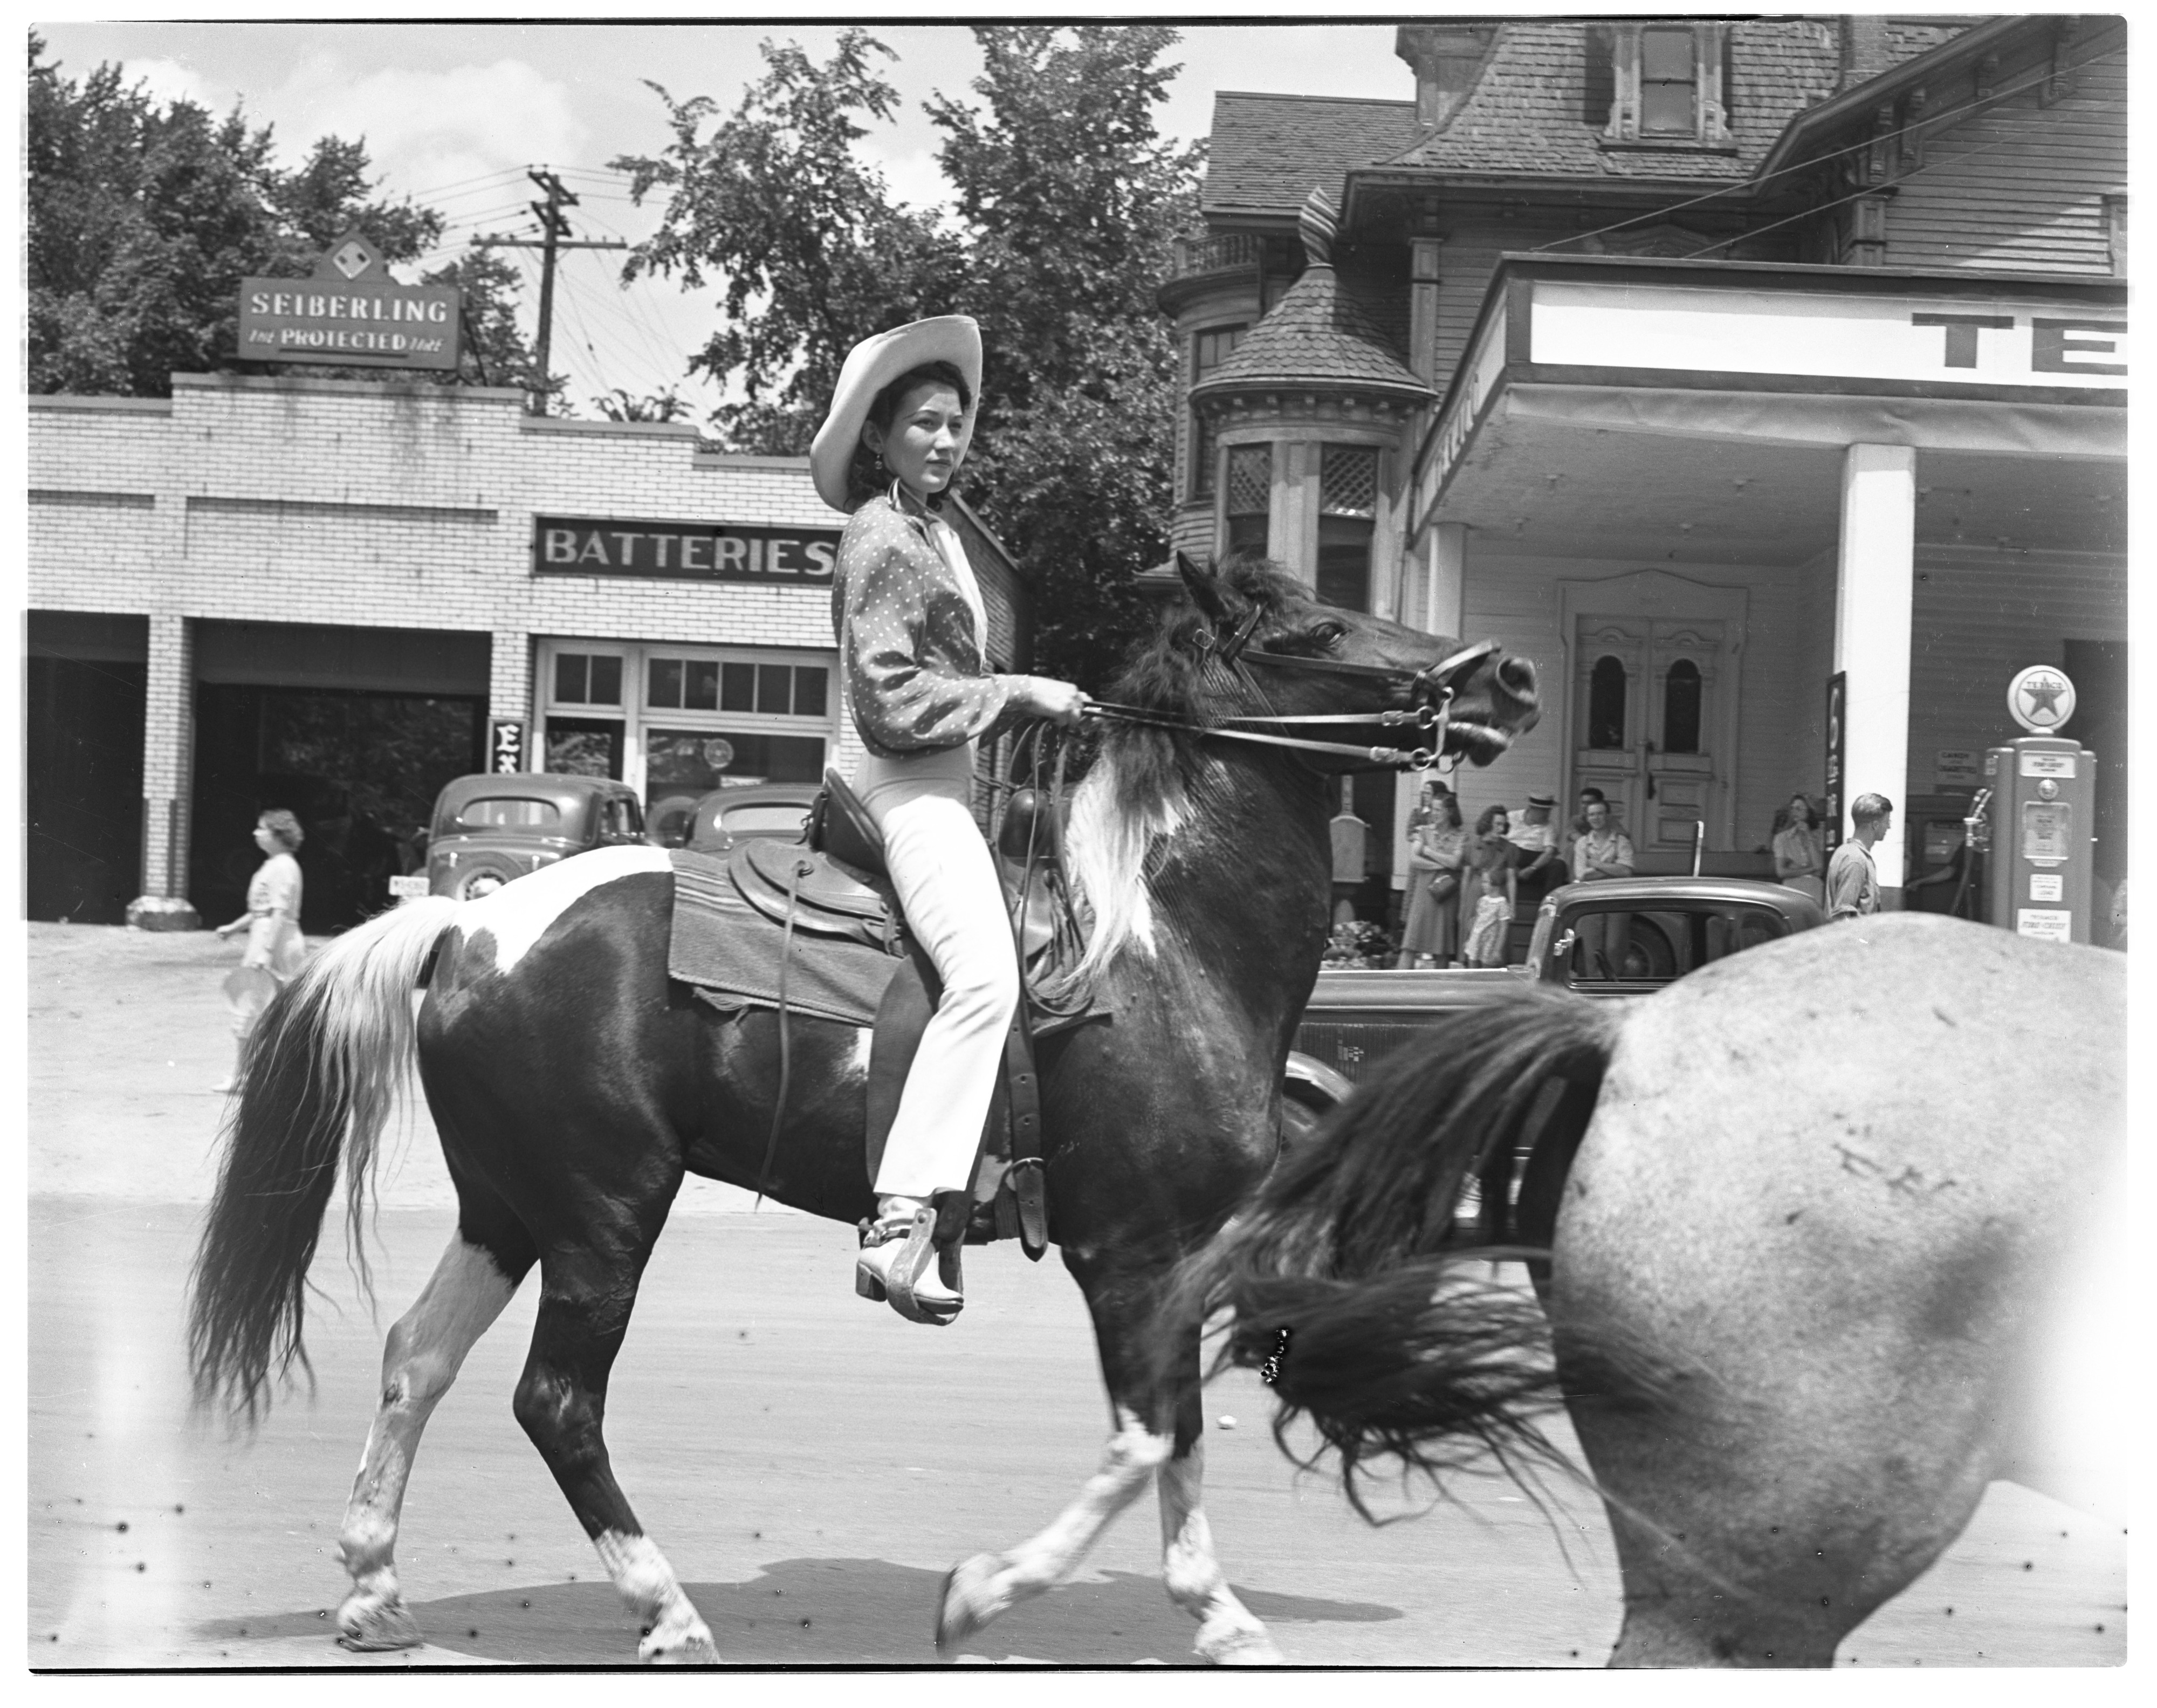 Parker & Watts Circus Parade - Horse and Rider Pass Texaco Station image